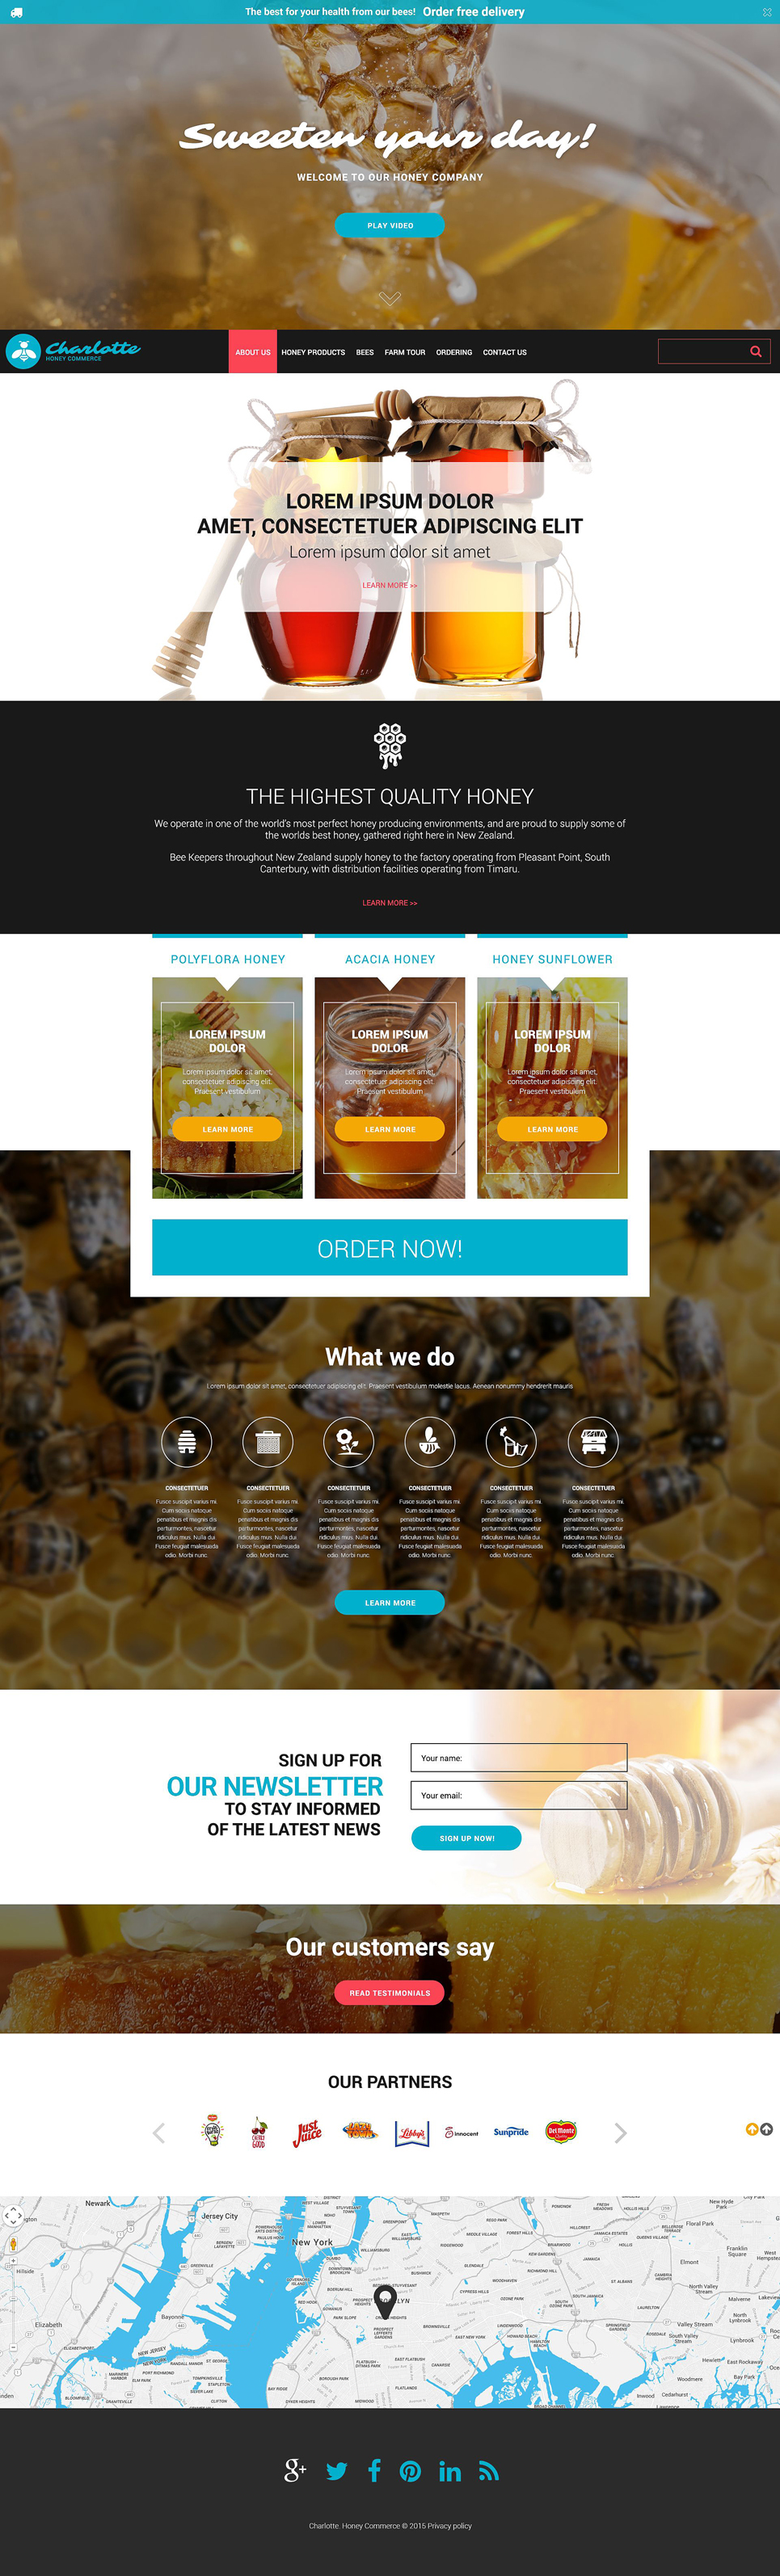 Honey Store template illustration image